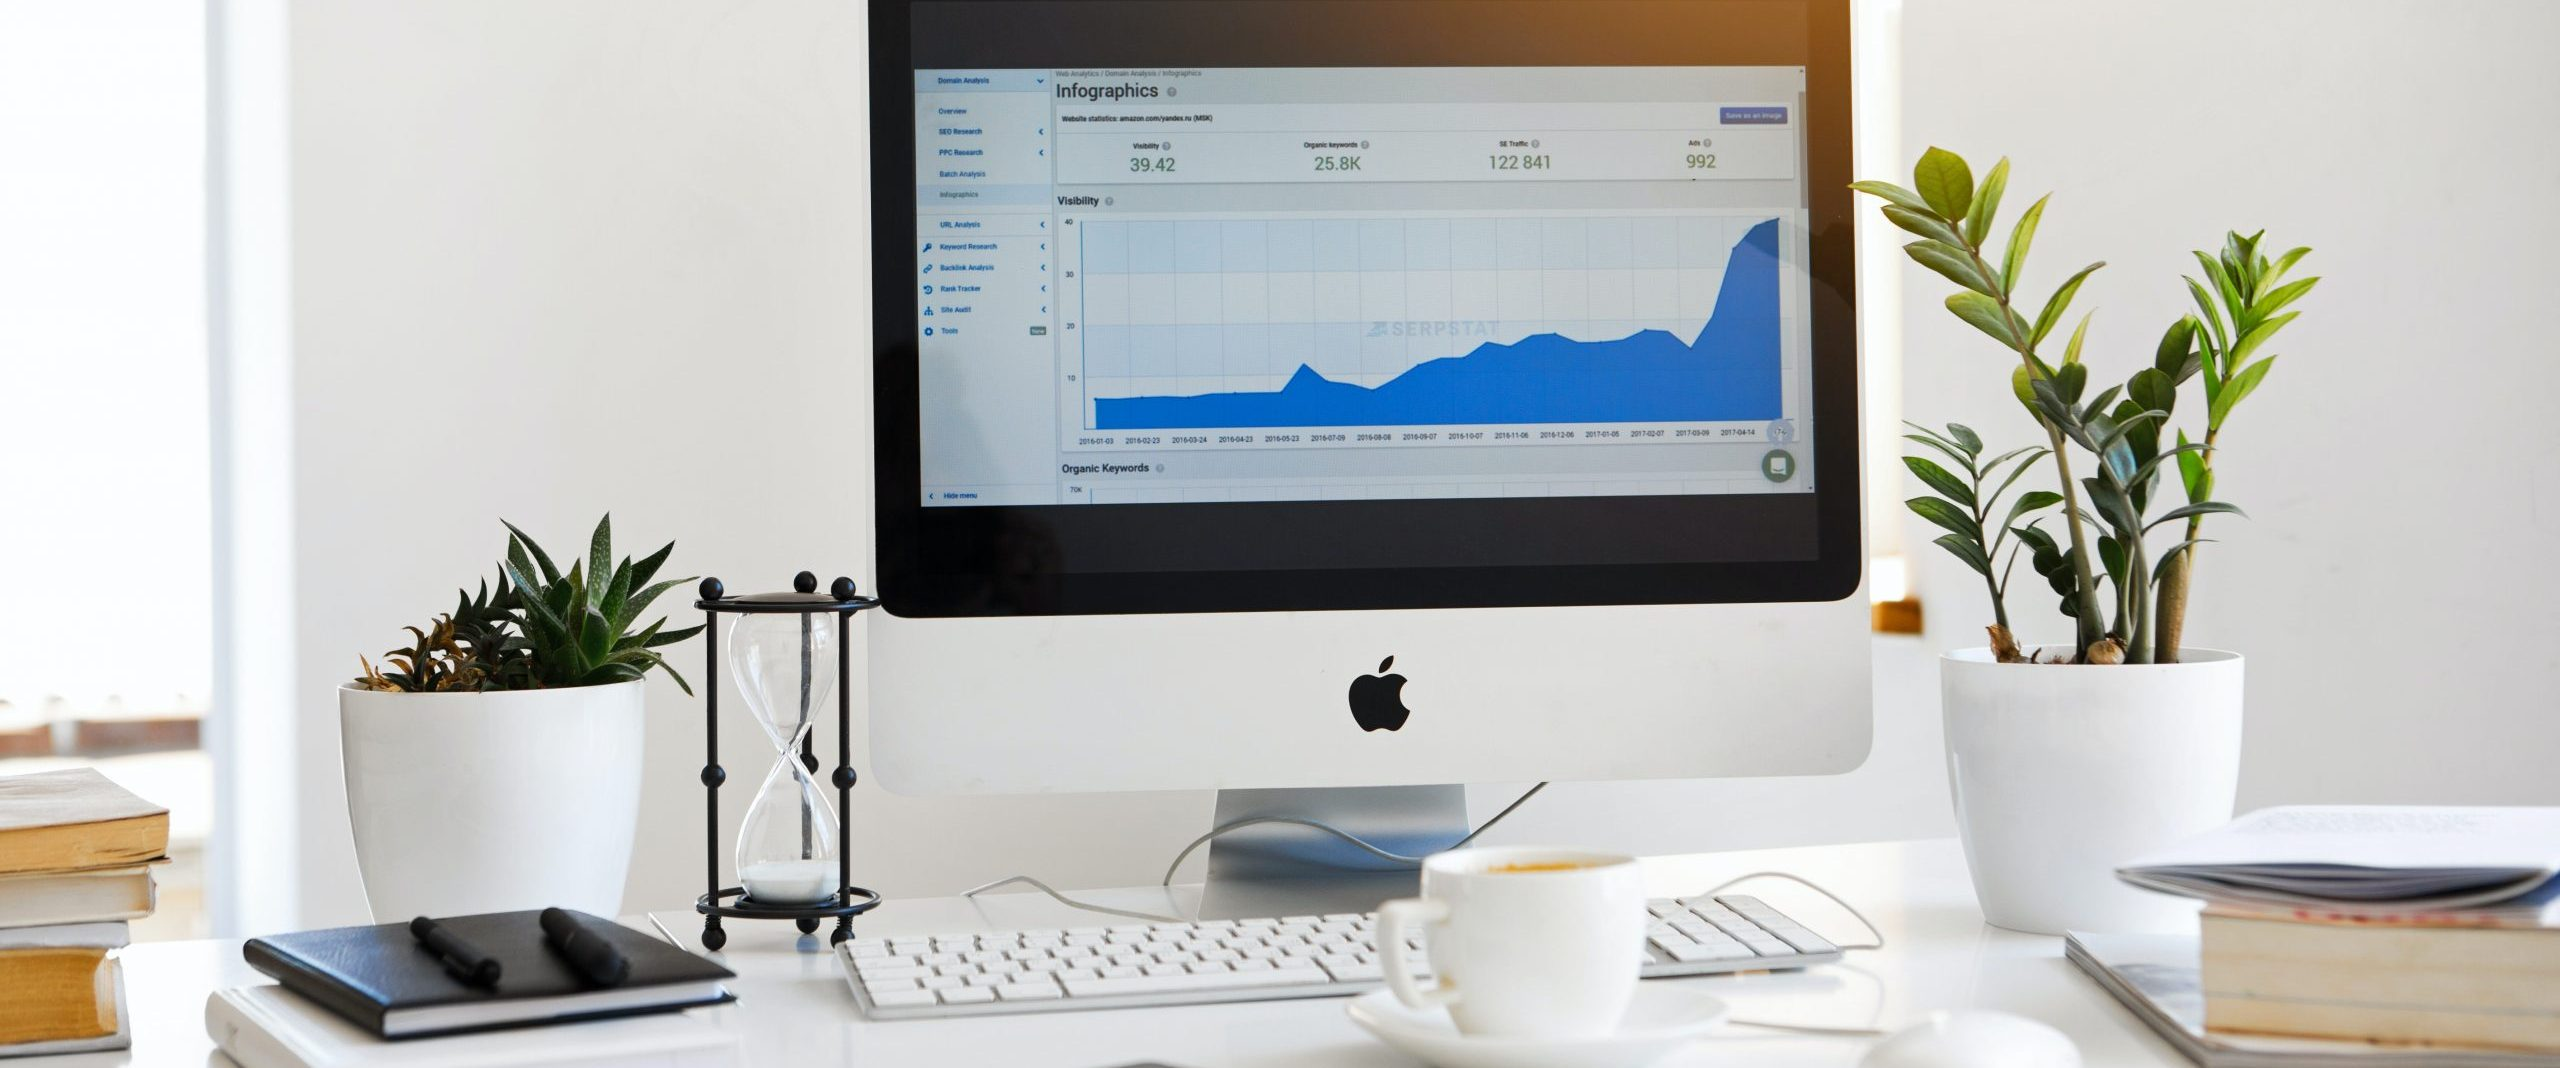 wave accounting, accounting photo, desk with computer showing graph